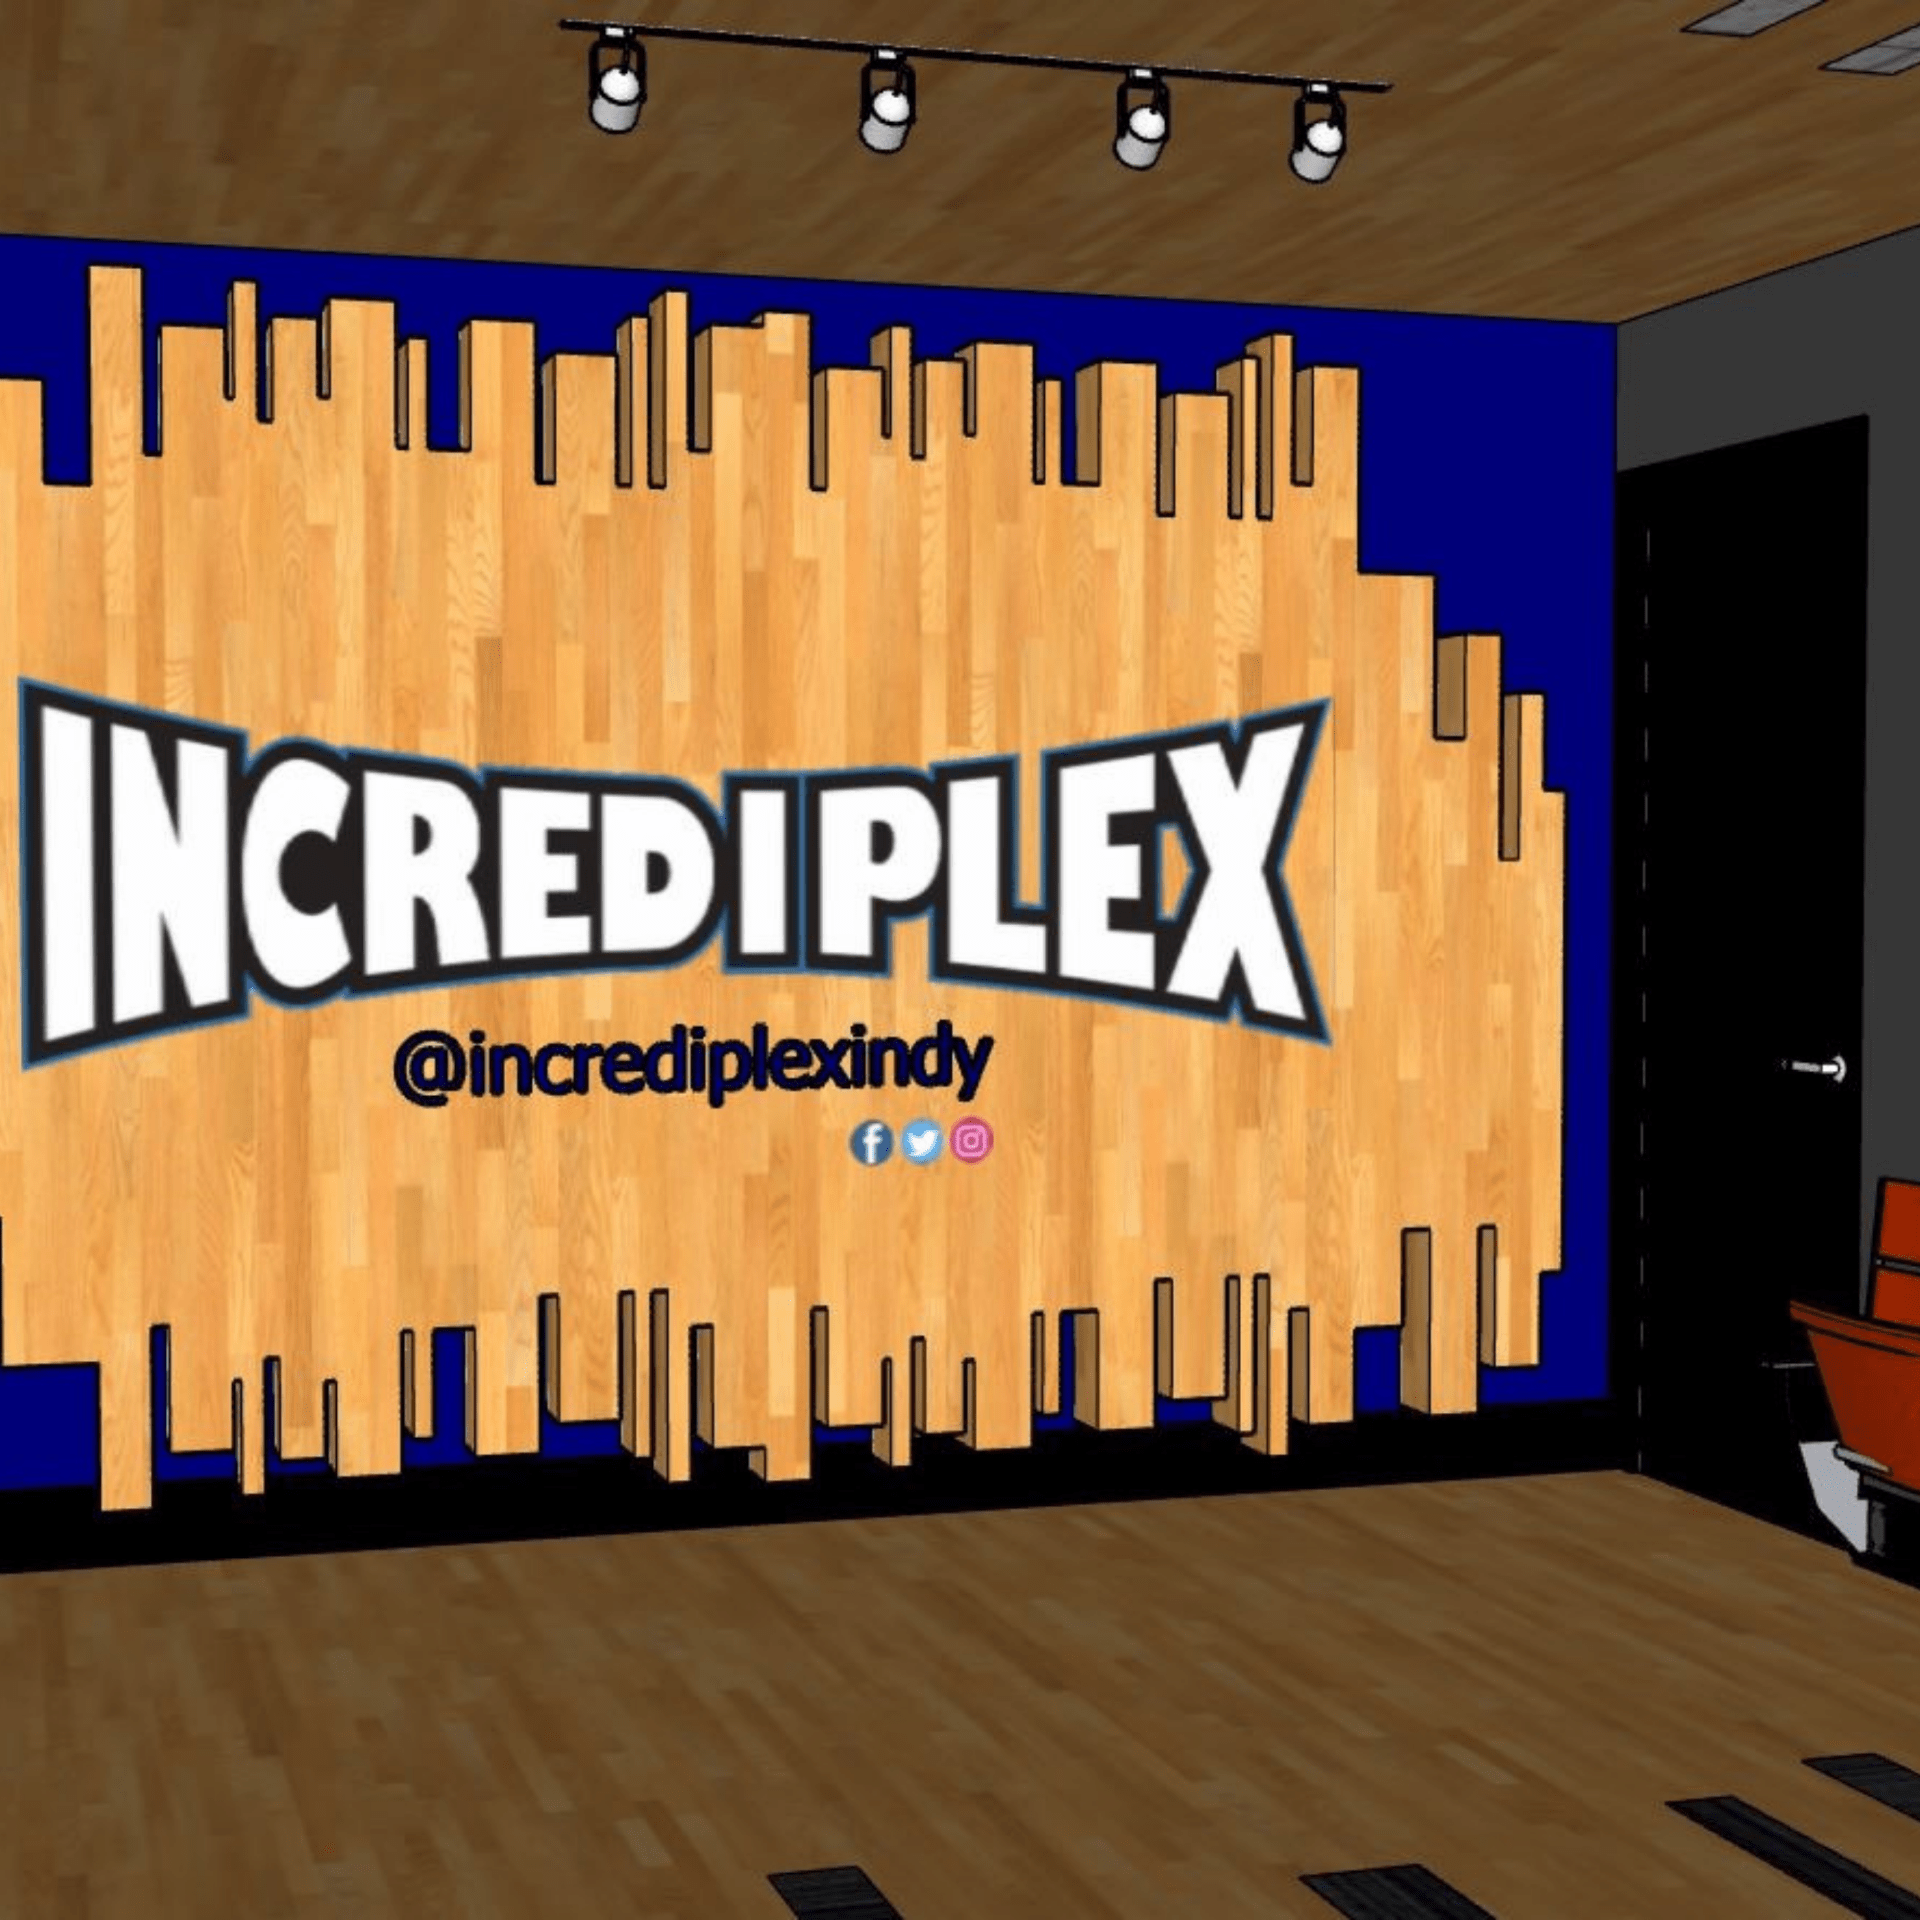 Incrediplex project description and student perspective.